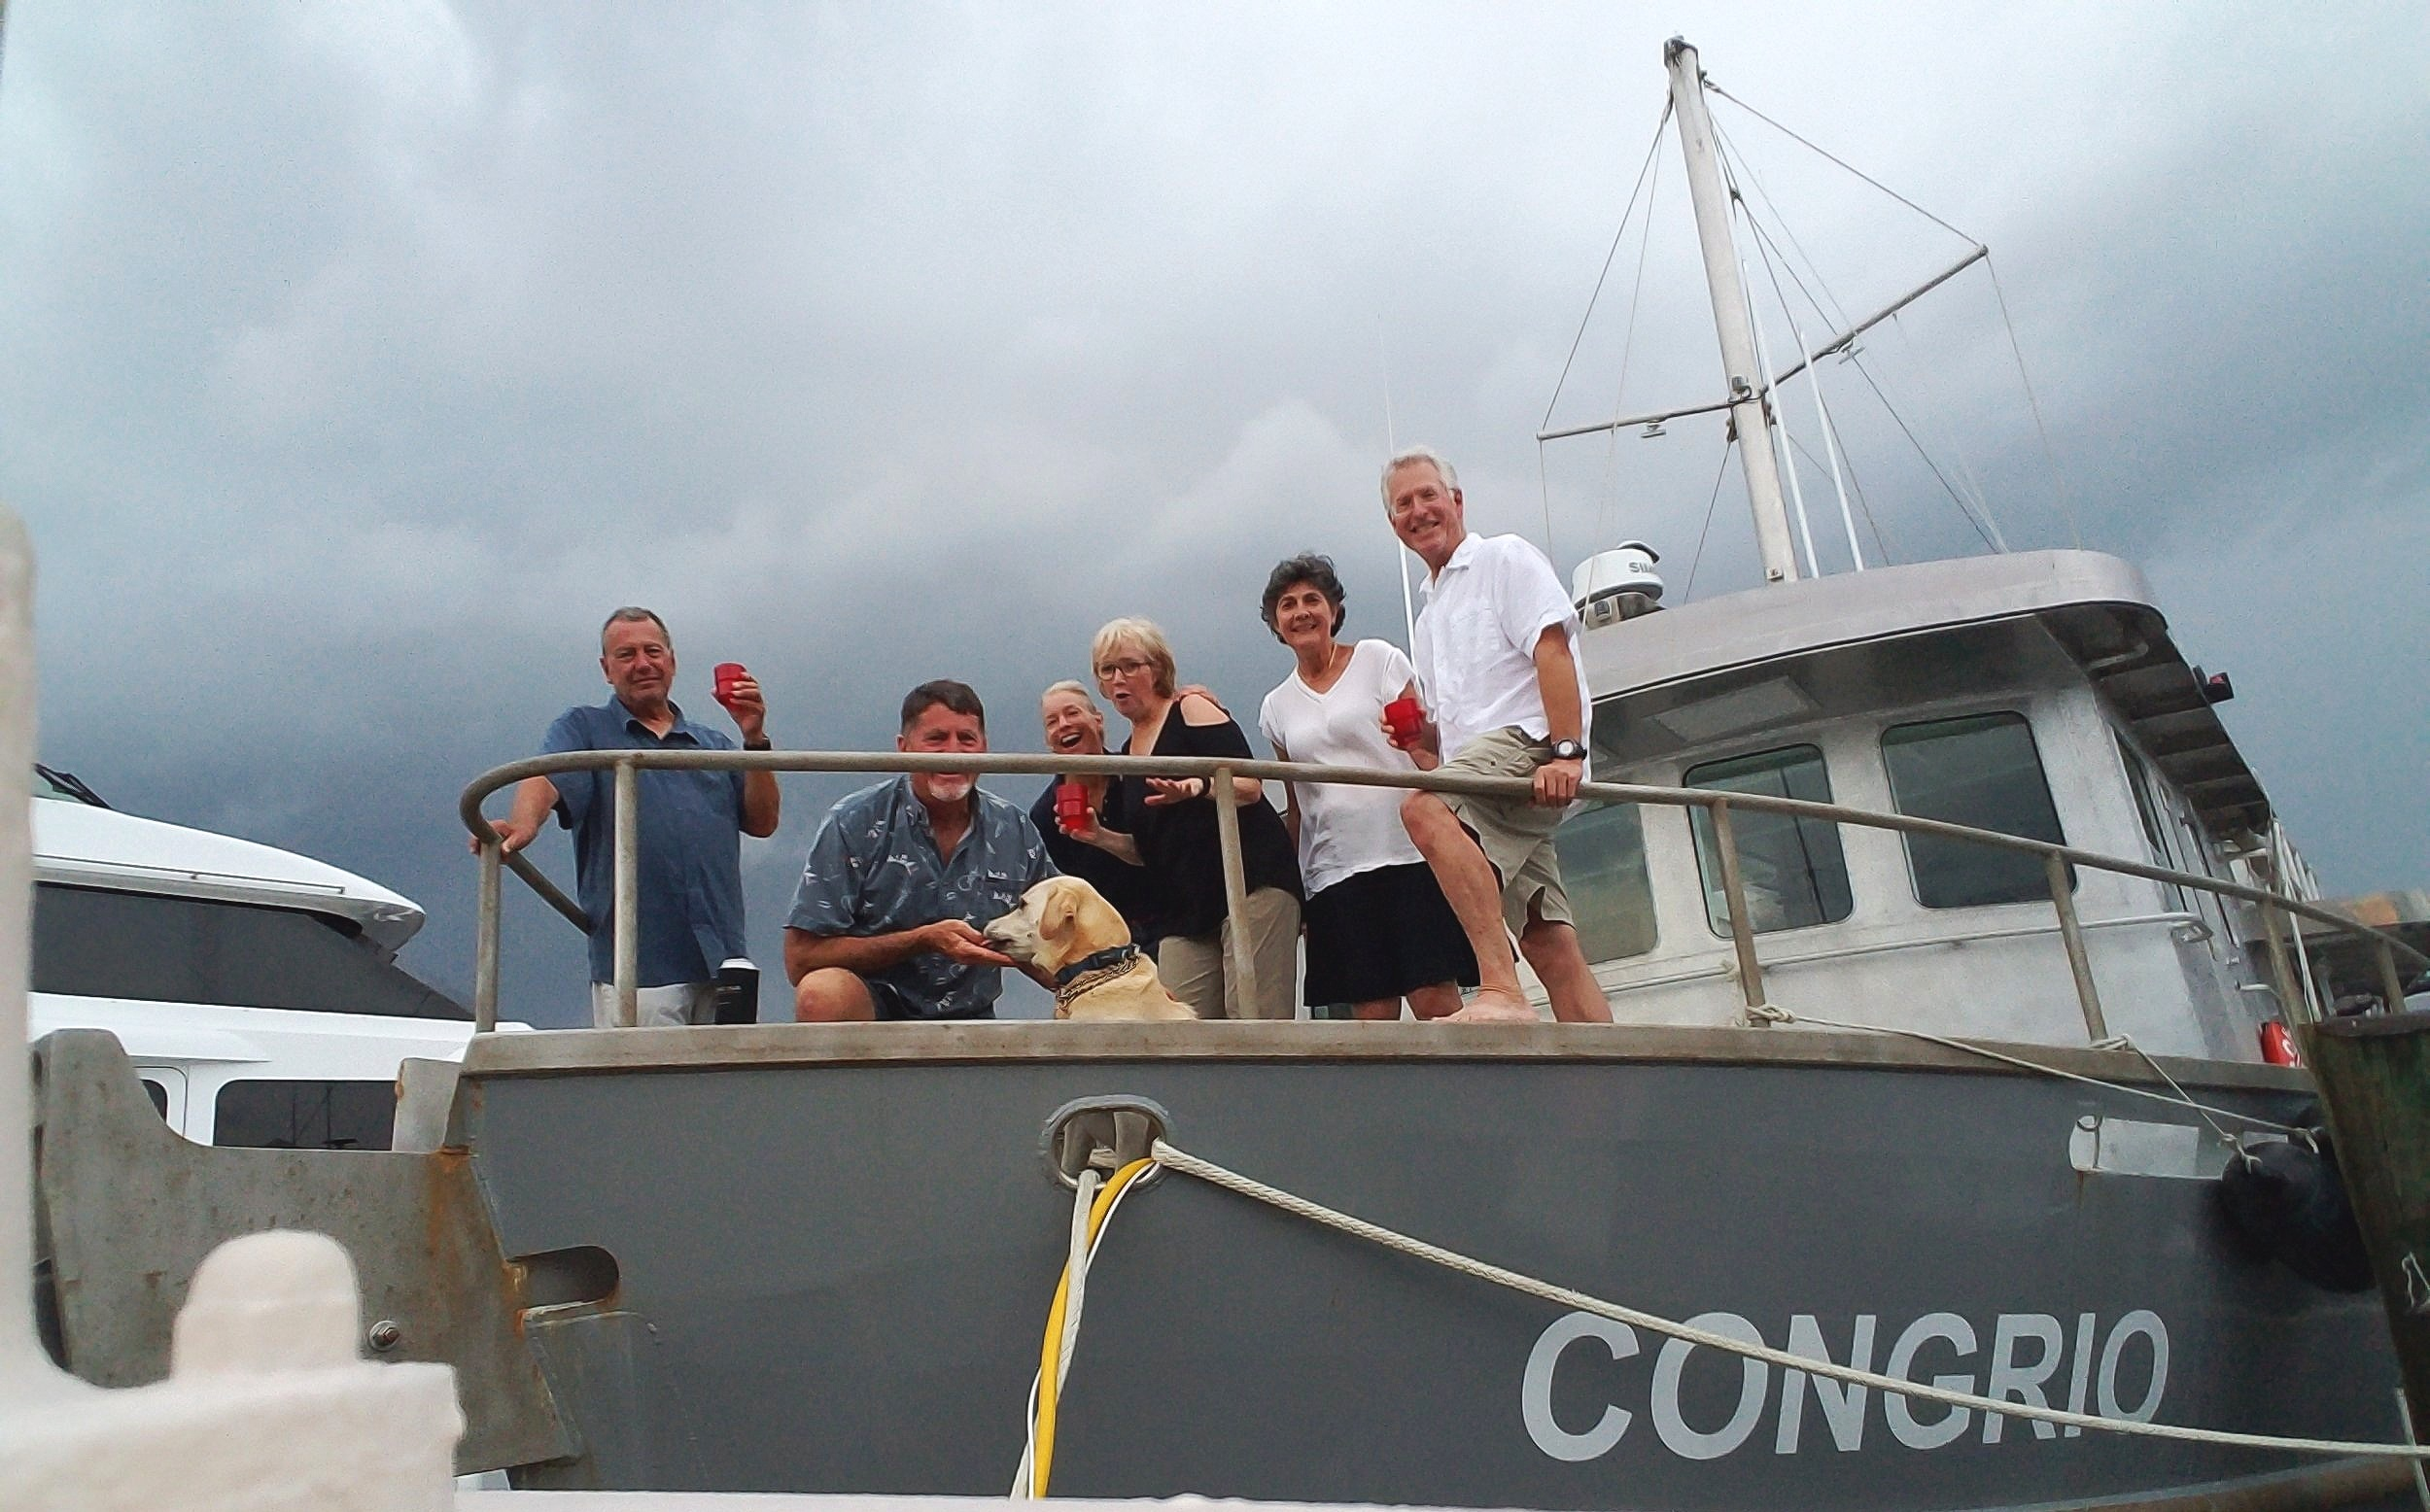 Our 'see ya' later' party with dock-mates Rob, Larry, Bailey, Jamie, Sharron, Patty & Eric